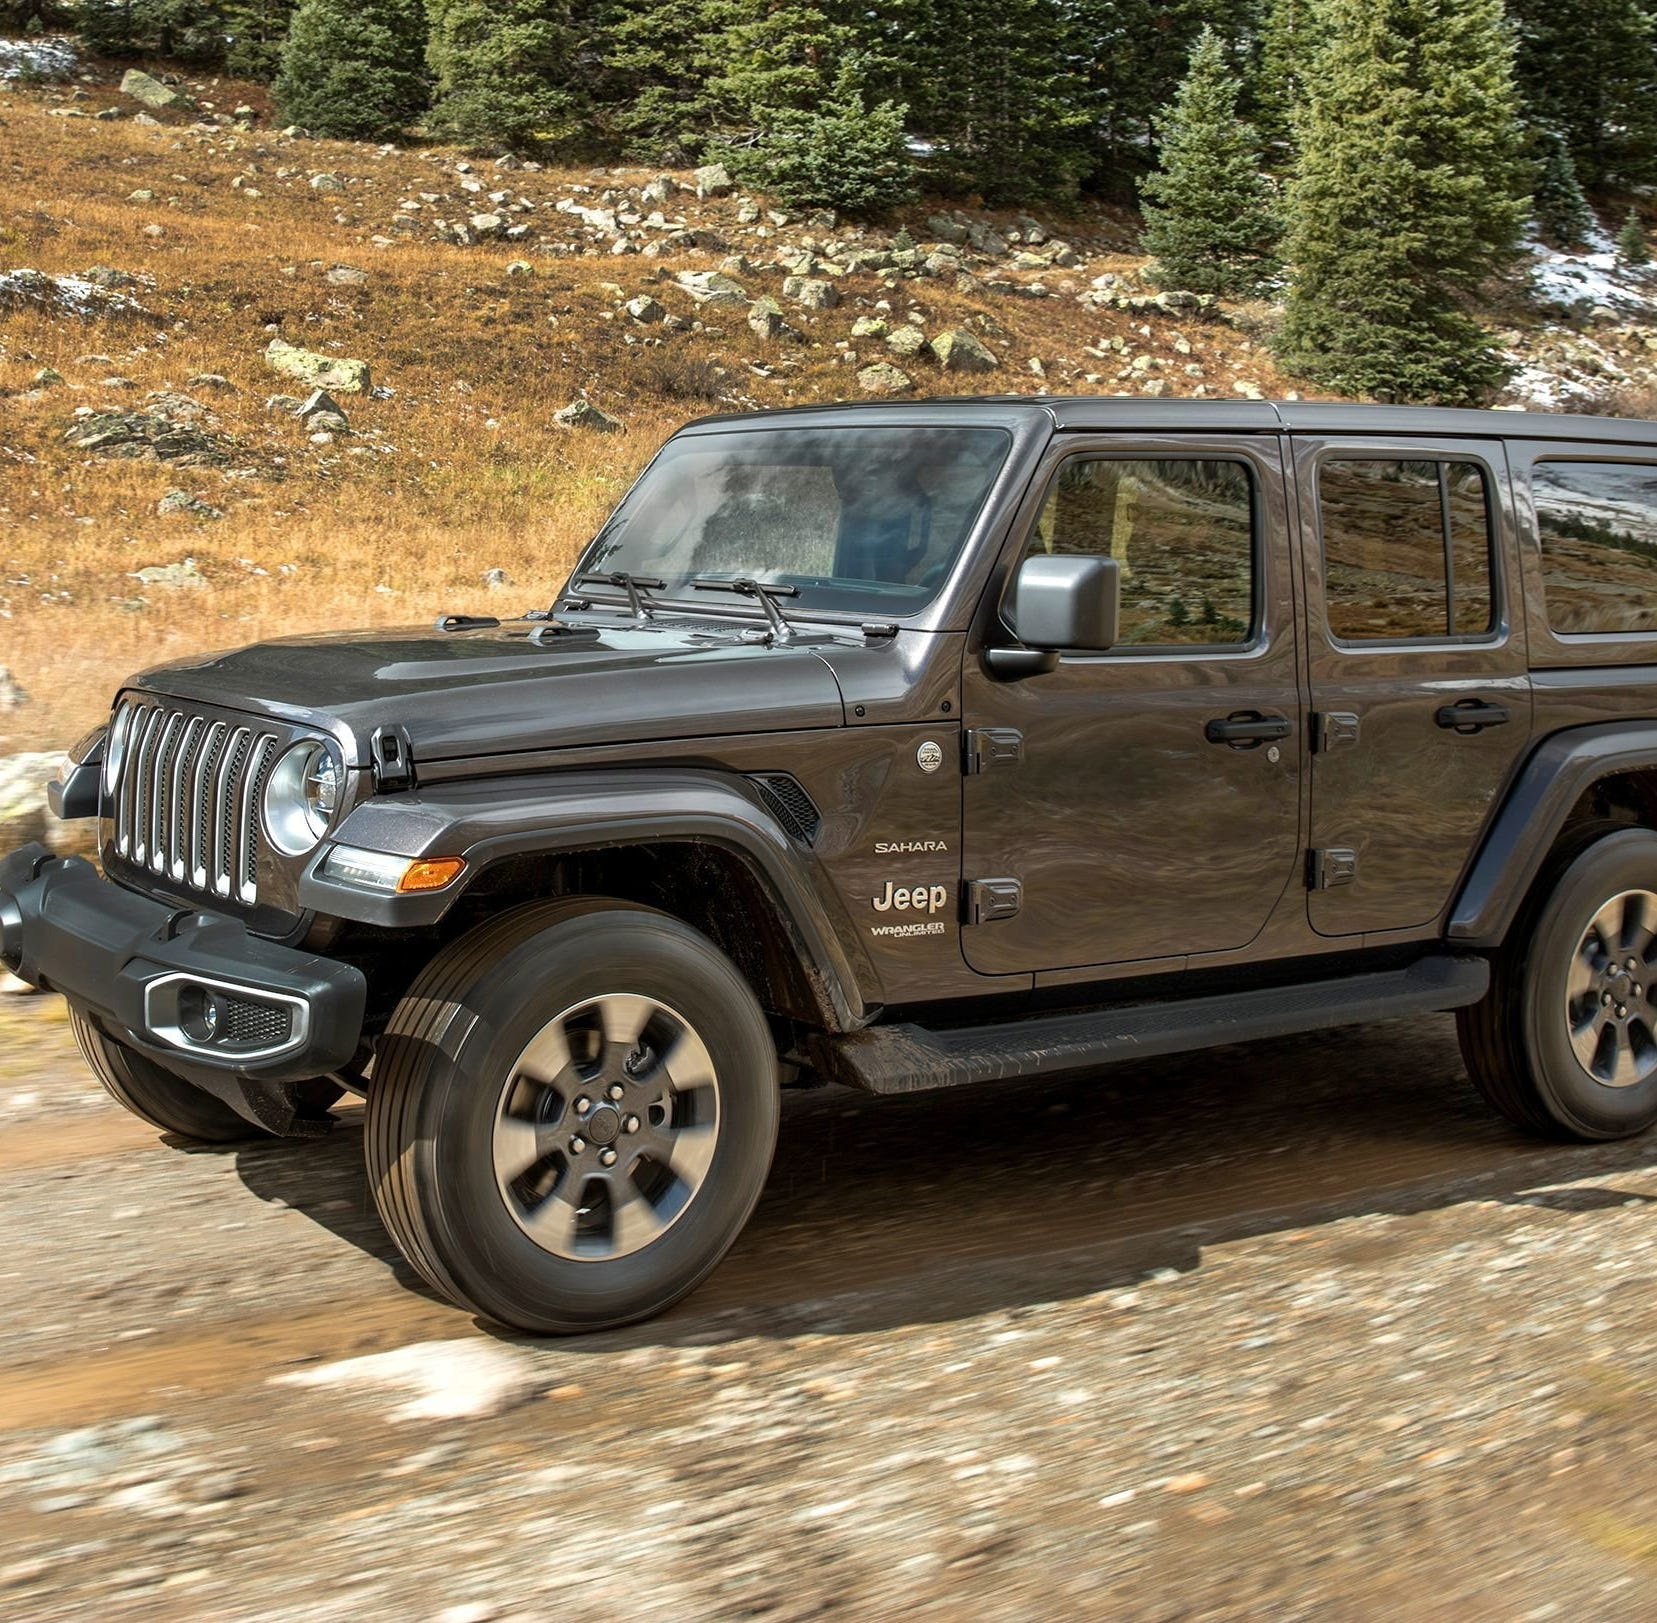 Jeep Wrangler drivers report death wobble on highways